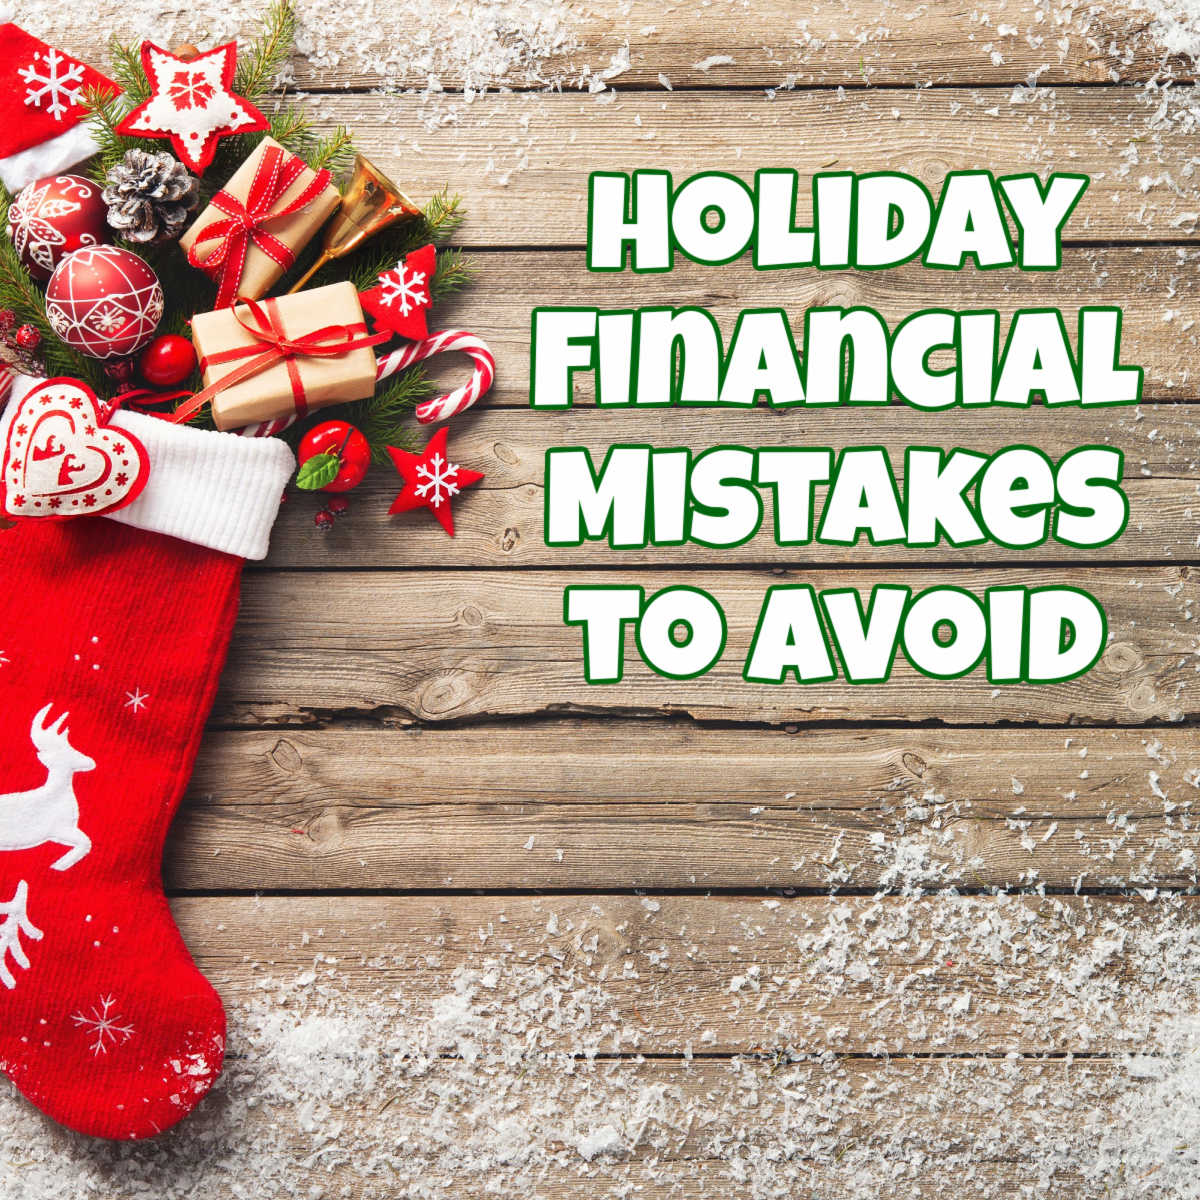 holiday stocking with text overlay reading holiday financial mistakes